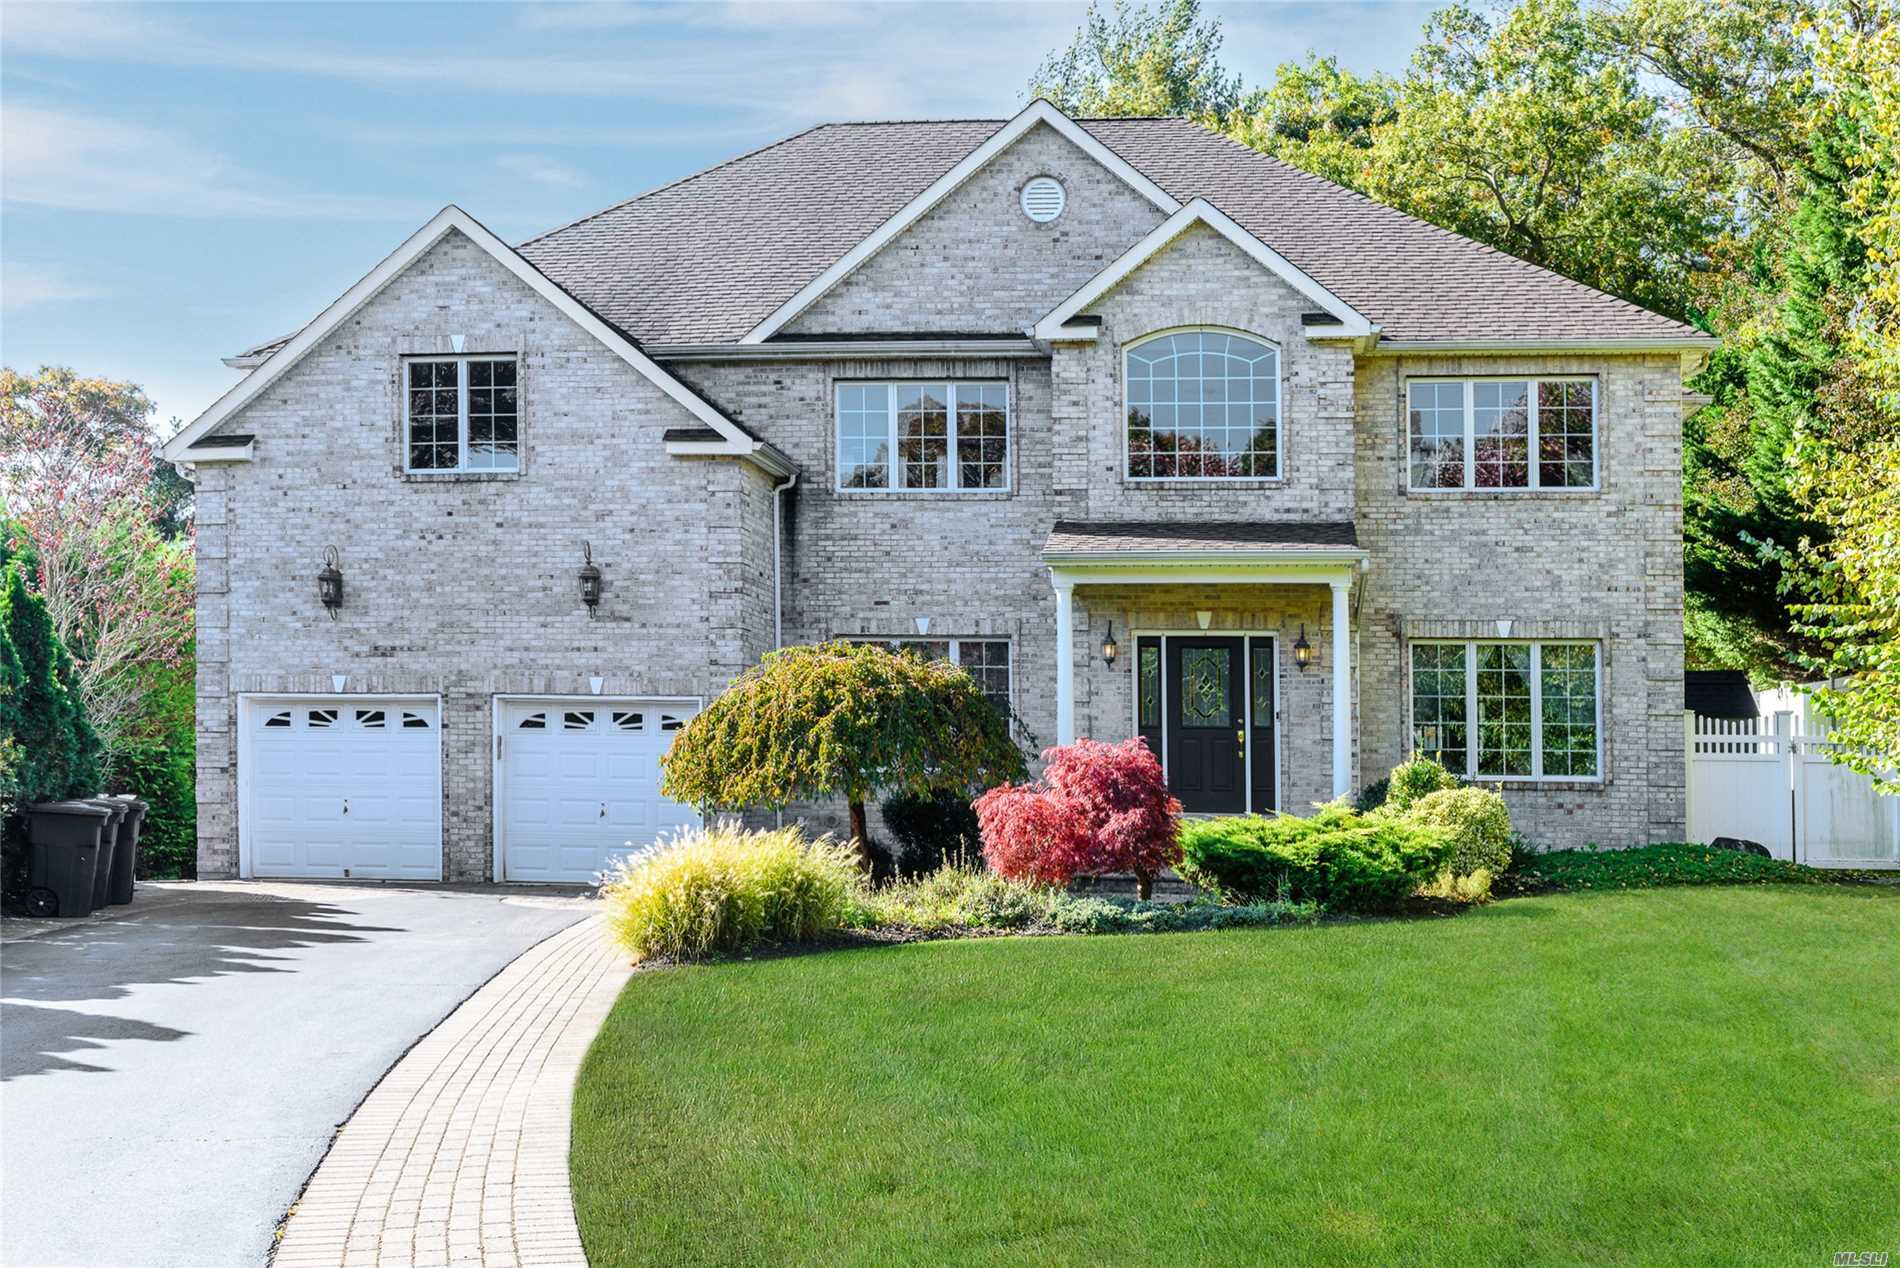 Huge Price Reduction Of $54, 000: Motivated Seller;4Large Custom Center Hall Colonial, 2 Story Entrance, 9 Foot Ceilings, Gourmet Eik, Media Room W/ Surround Sound, Huge Master Bedroom W/ Spa Bath, 3 Additional Bedrooms, 2 Full Baths. Full Finished Basement With Media Room, Office F/Bth, , Ose, In Ground Pool/Hot Tub, Bbq, Sports Court. Entertainers Delight.Start The New Year In New House.